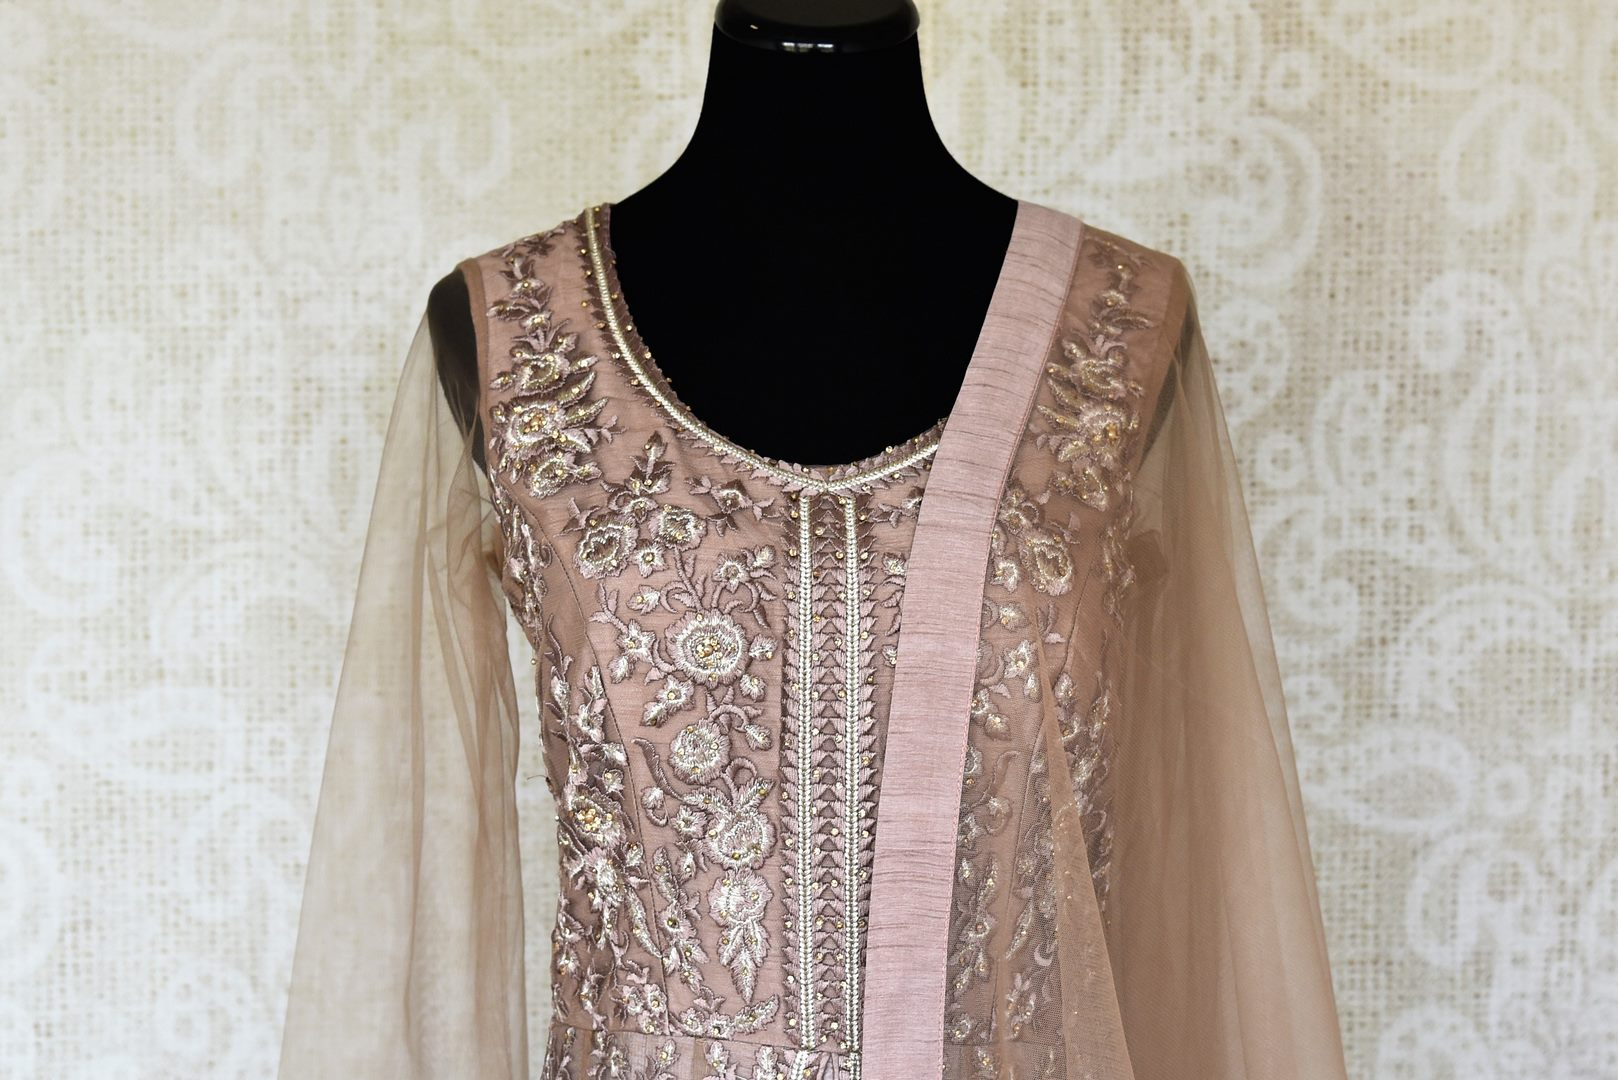 Buy beige embroidered net designer Anarkali suit online in USA with dupatta. Make fashionable choices with latest Indian designer clothing from Pure Elegance Indian fashion store in USA. Shop Indian salwar suits, designer Anarkali suits and bridal lehengas for Indian brides in USA from our online store.-front